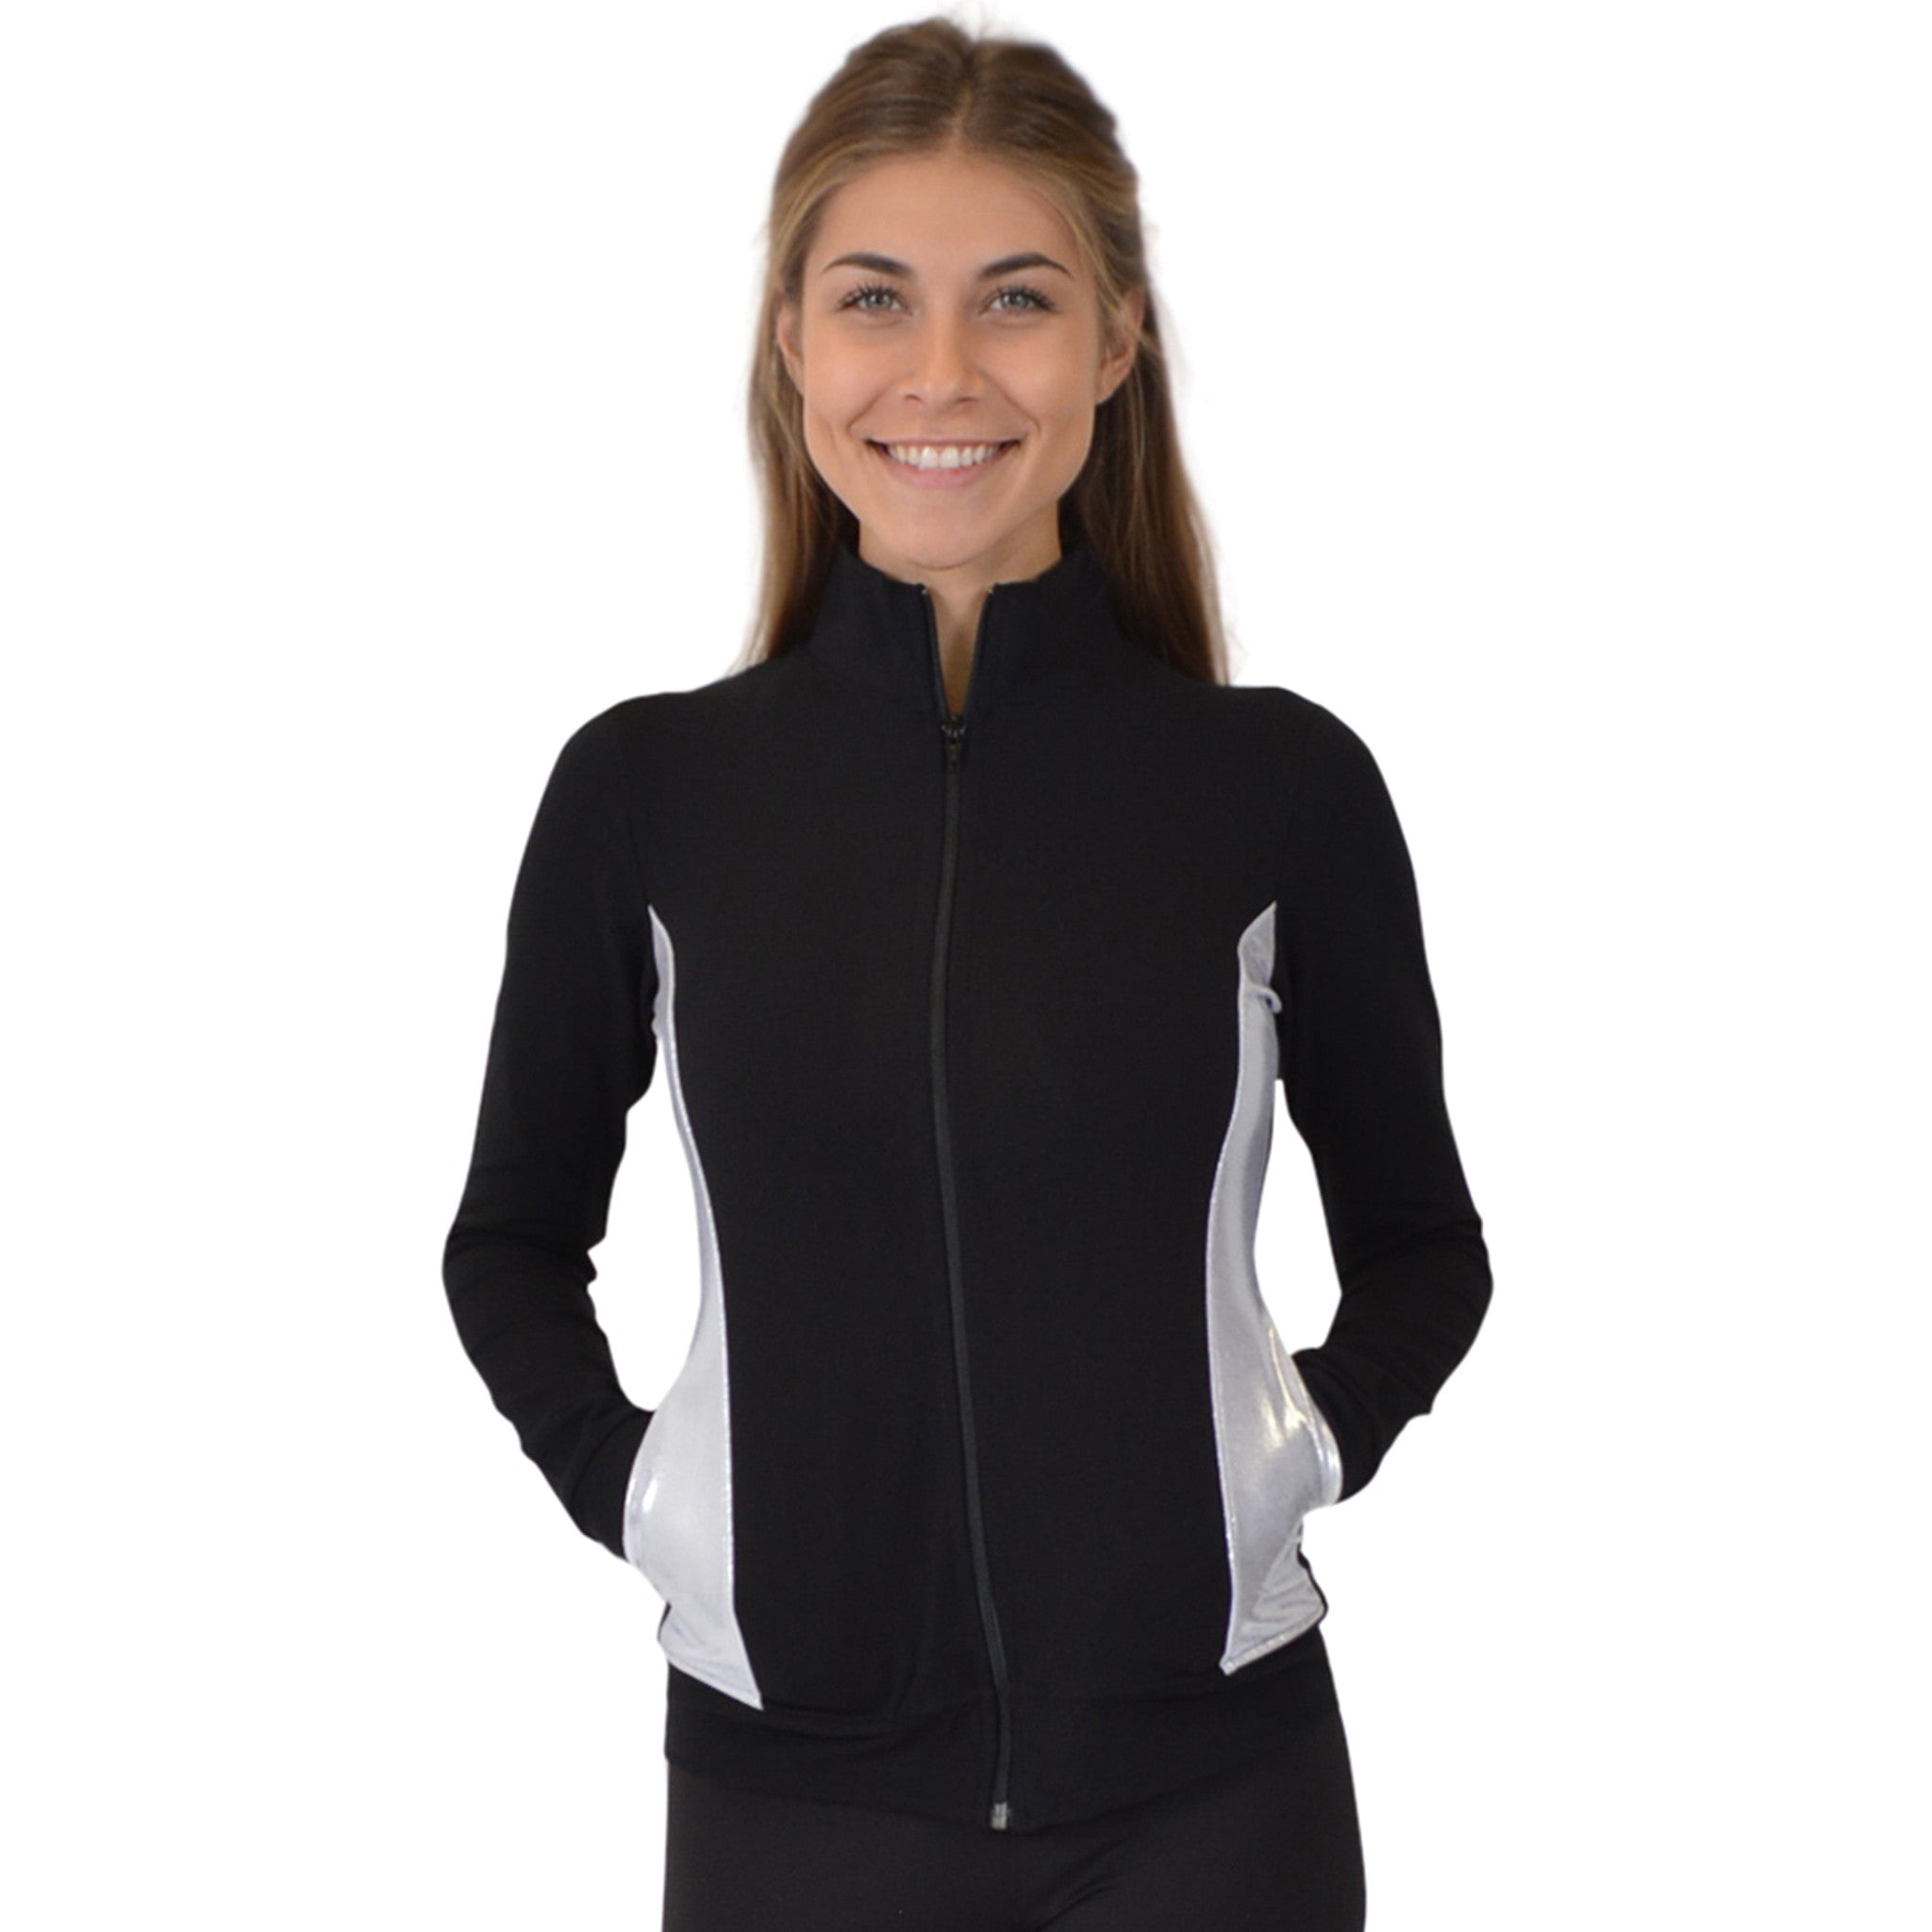 Teamwear SILVER SLIT Cadet Warmup Jacket